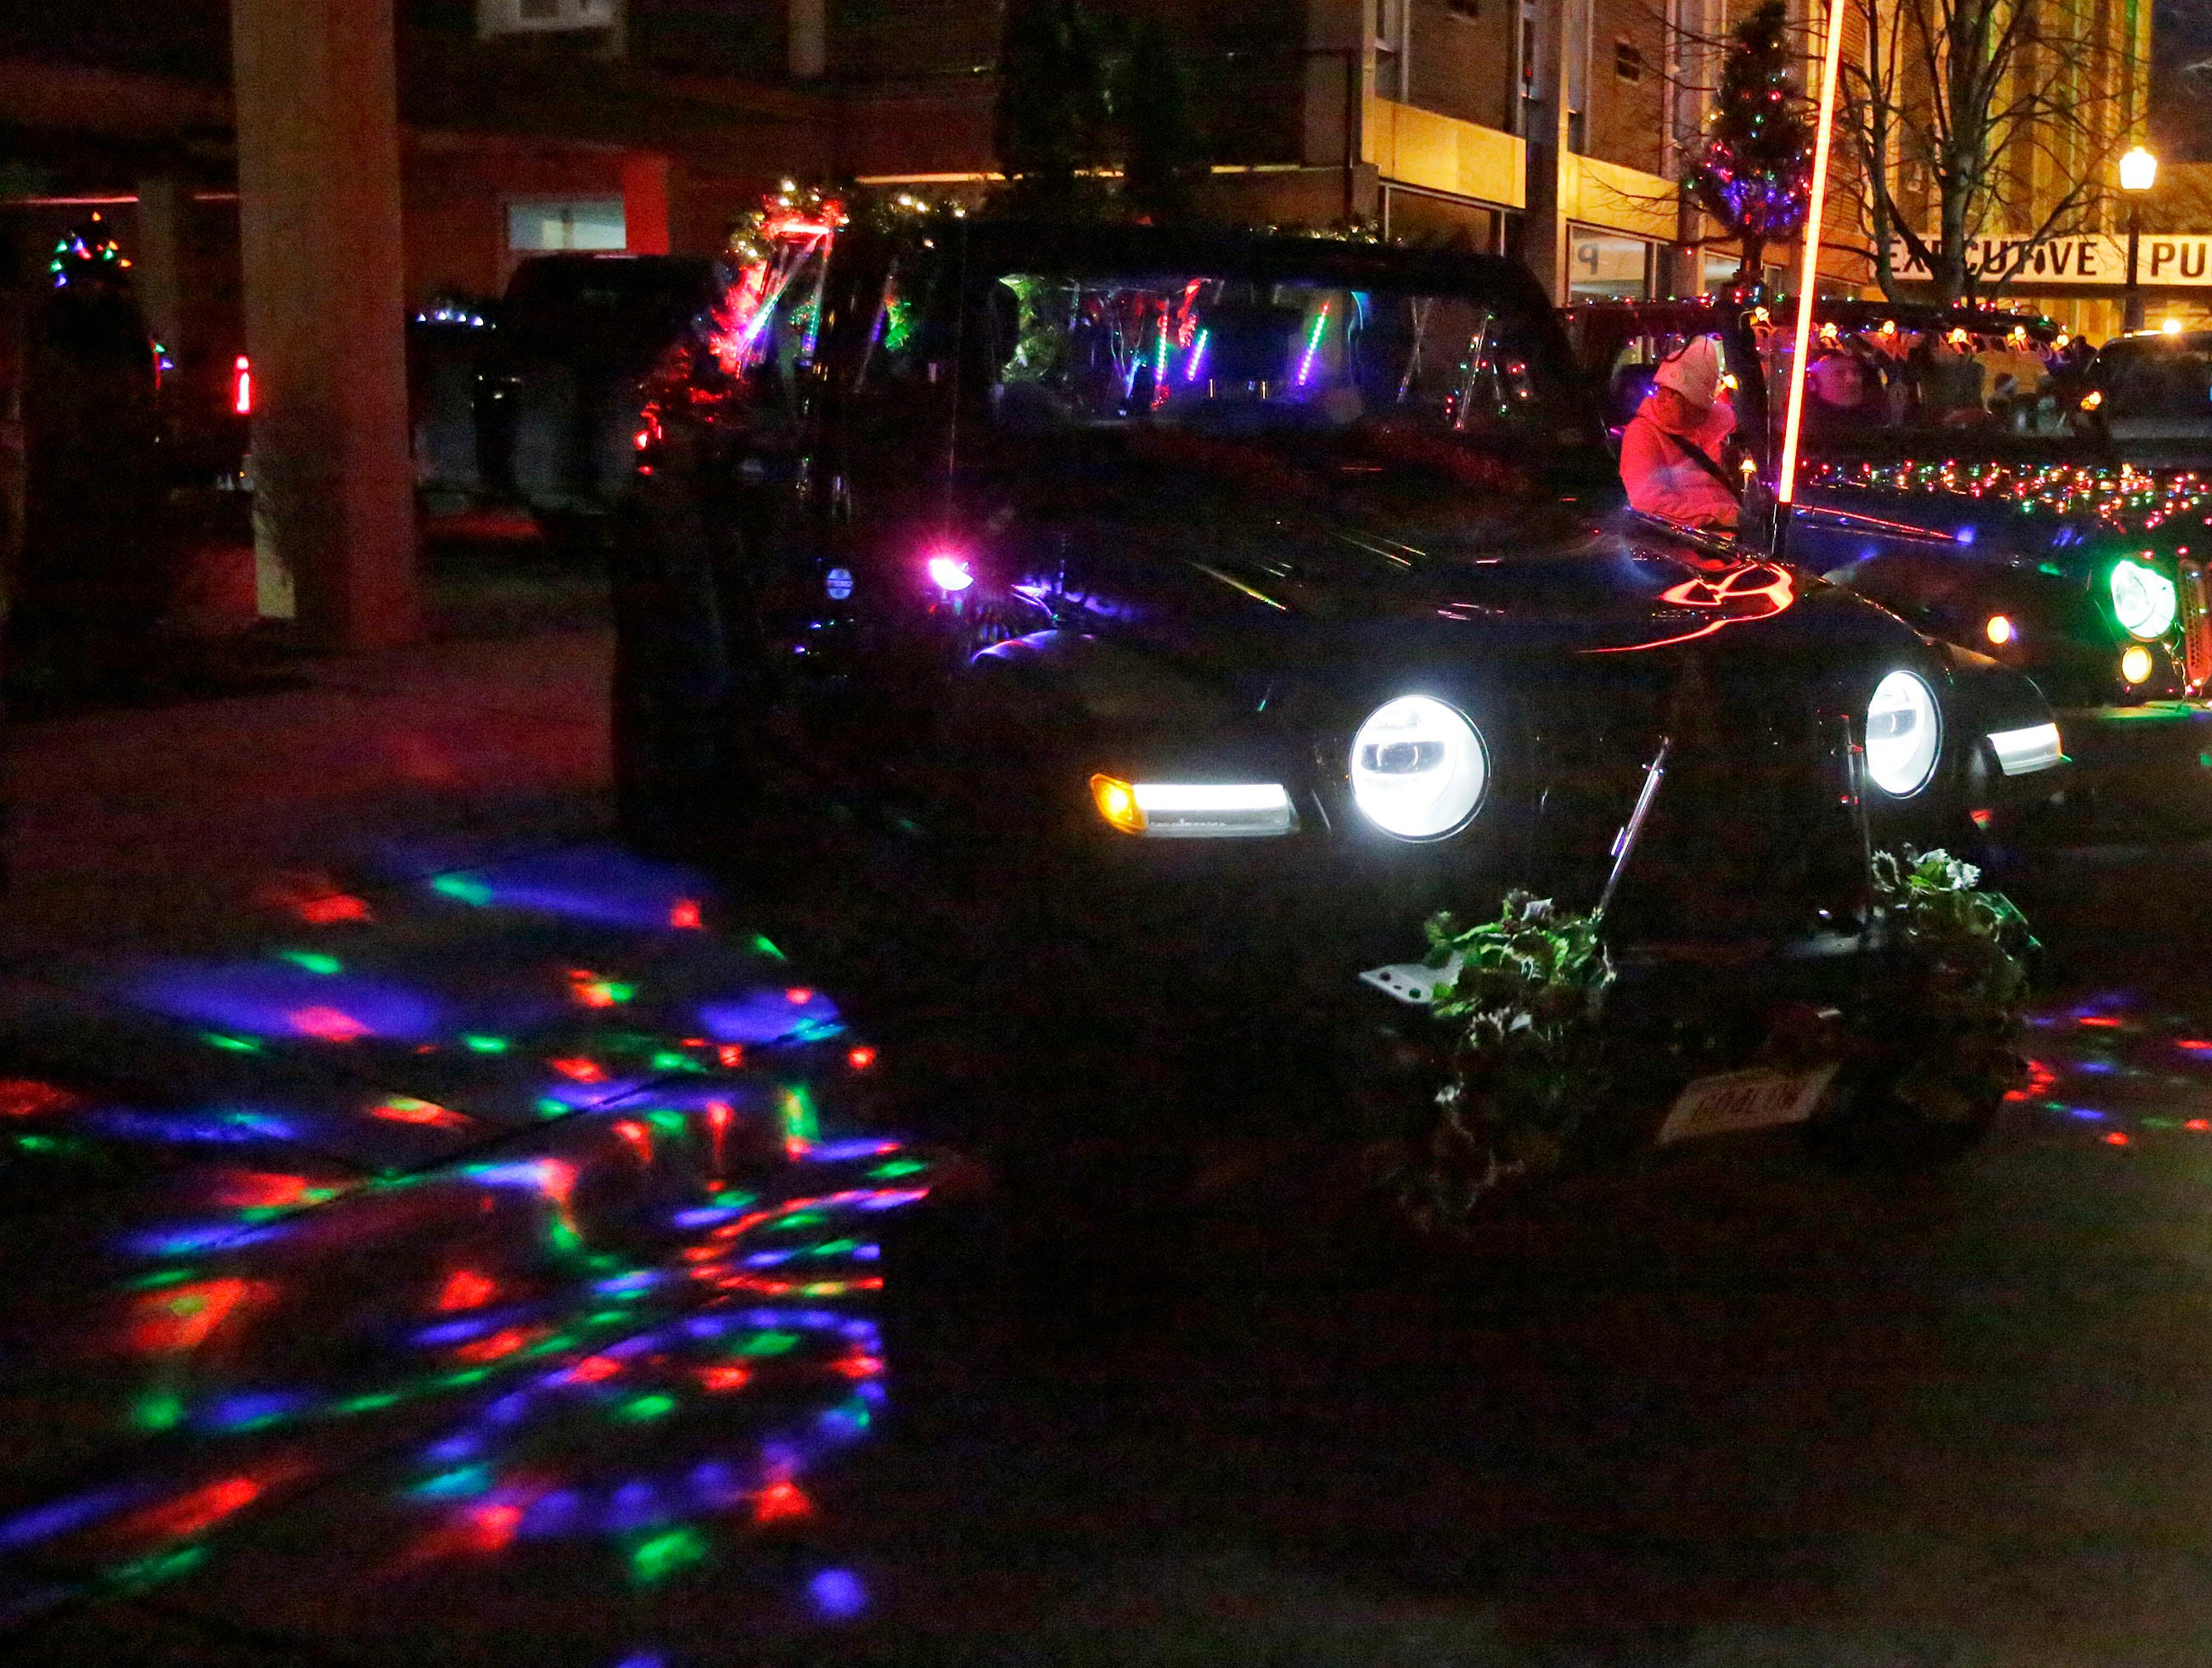 Jeeps light up the scene before the 26th Annual Jaycees Holiday Parade, Sunday, November 25, 2018 in Sheboygan, Wis.